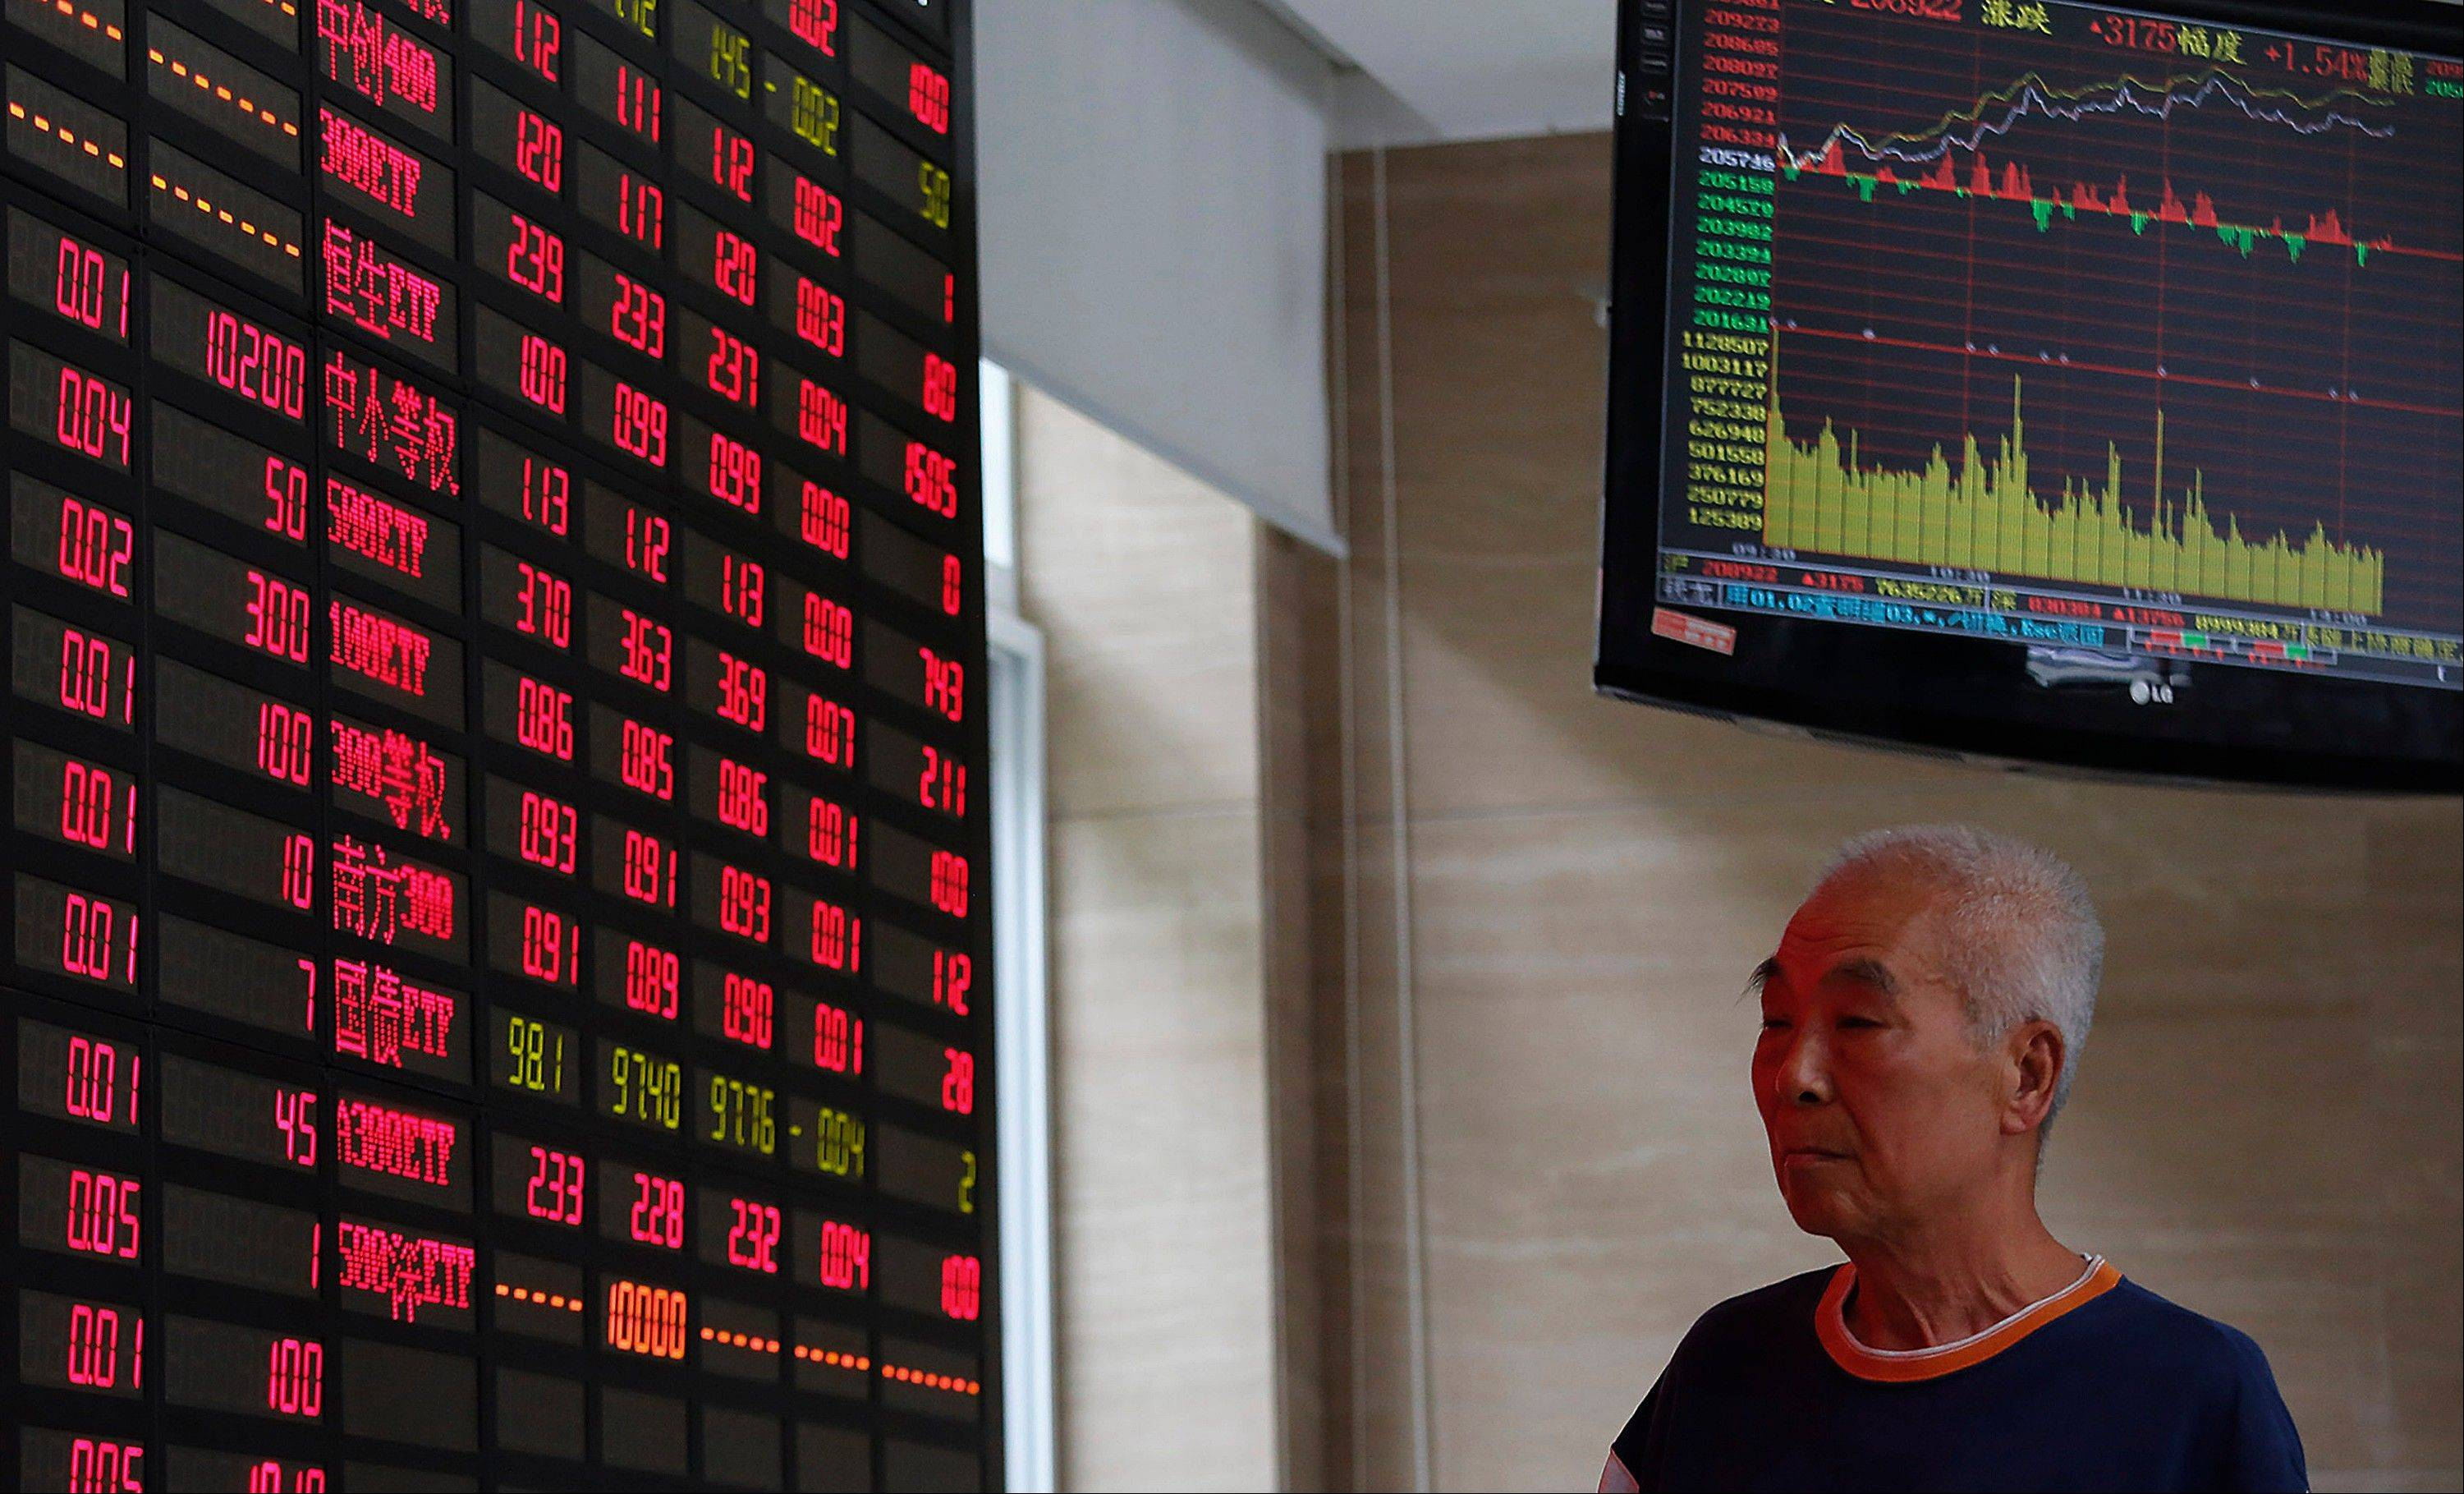 An investor looks at a stock prices monitor at a private securities company Monday in Shanghai, China. Asian stock markets mostly rose Monday after expectations for an imminent phasing out of the Federal Reserve's monetary stimulus program began to fade.